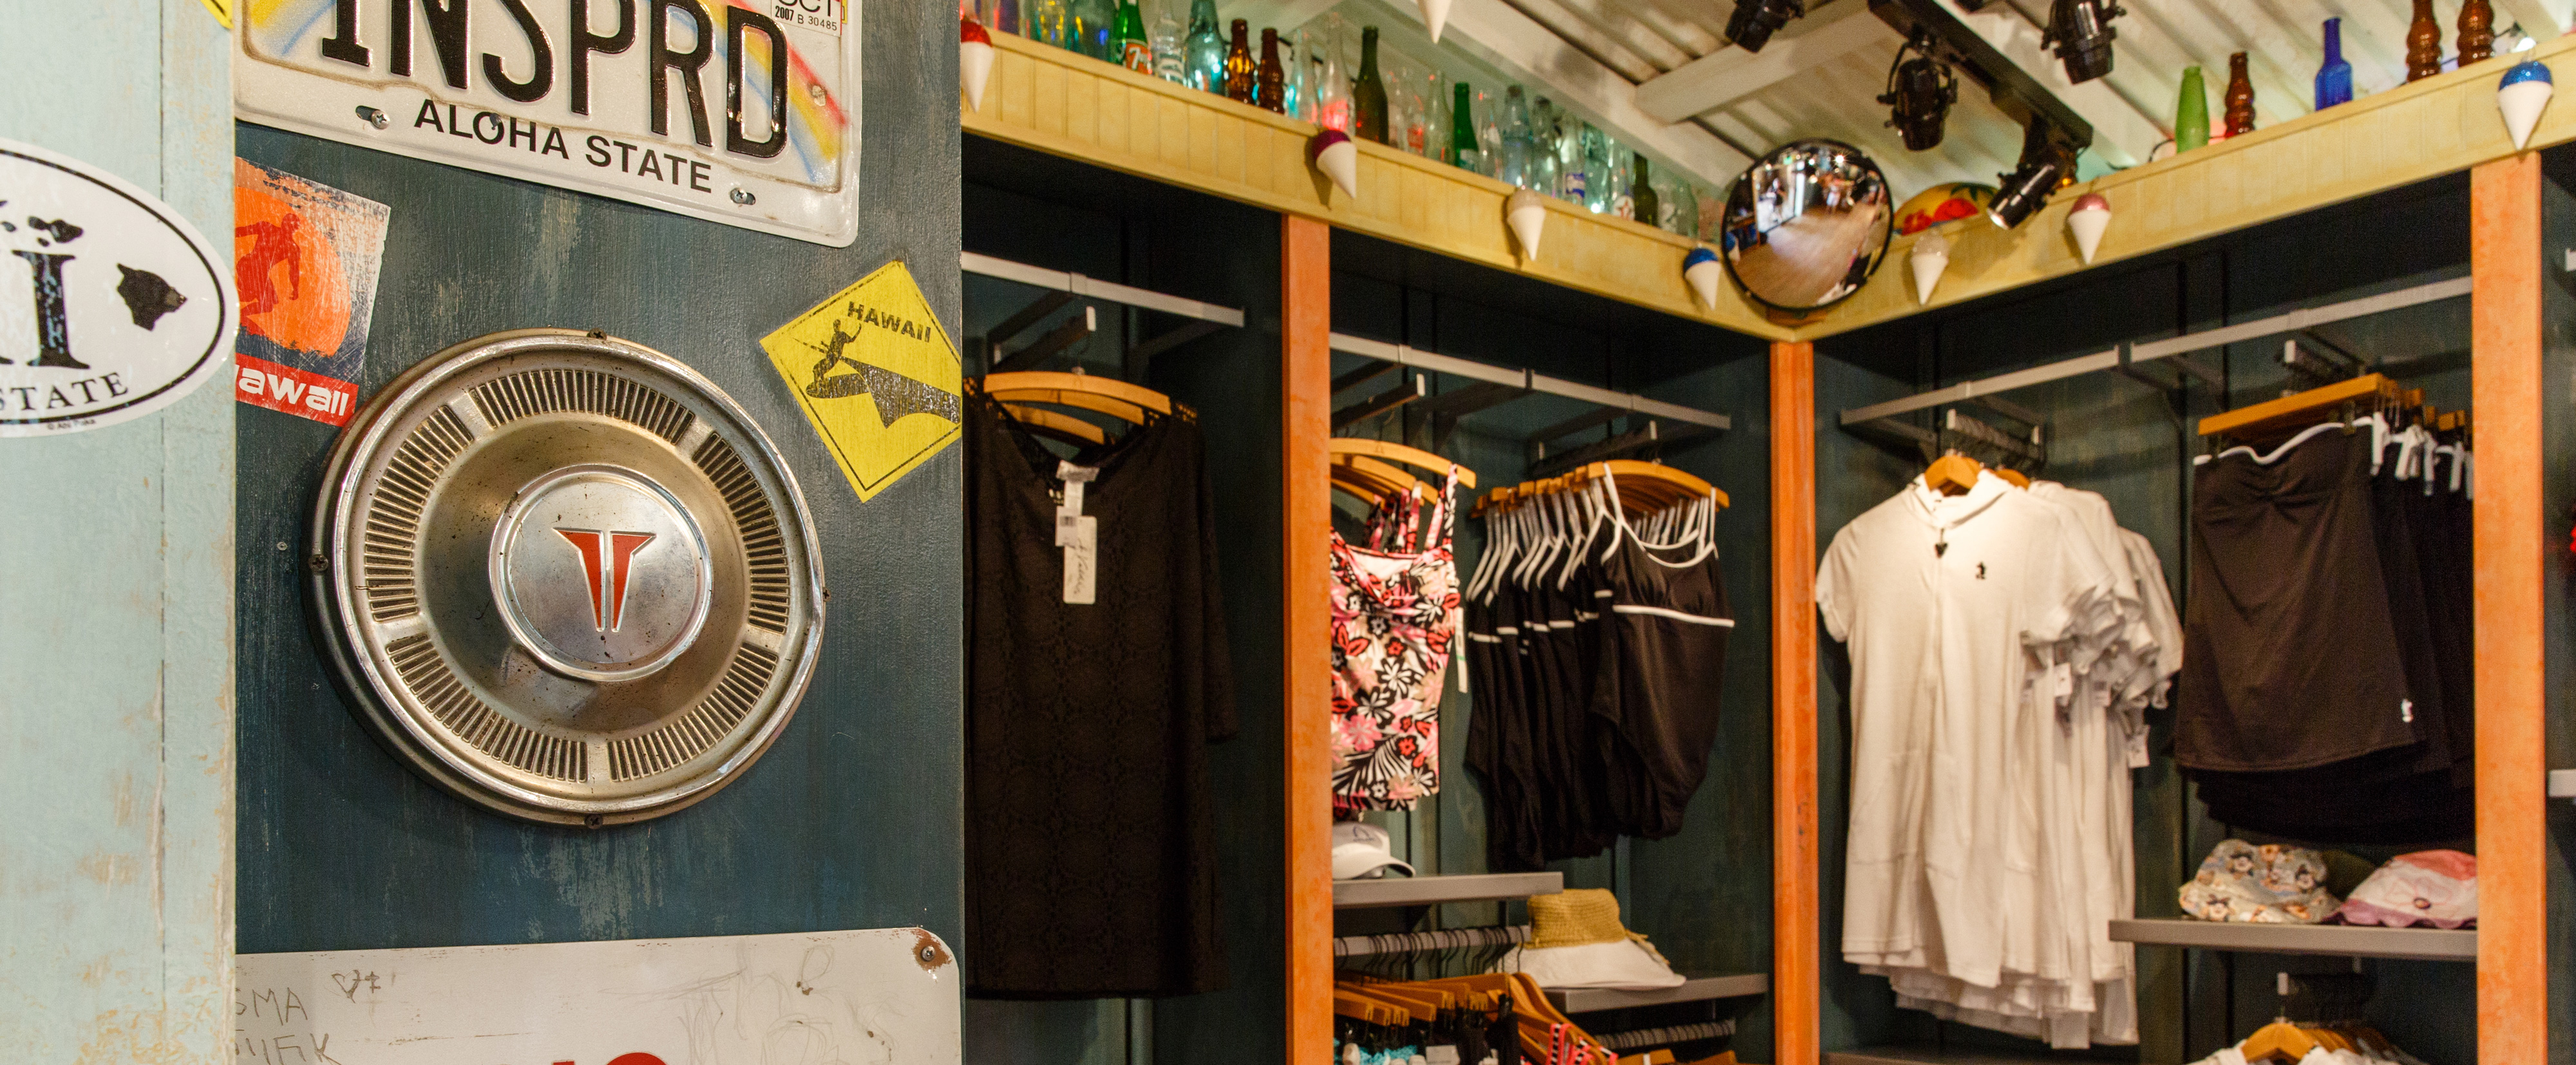 A hubcap and Hawaii memorabilia decorate a wall near hanging displays of swim and beach wear